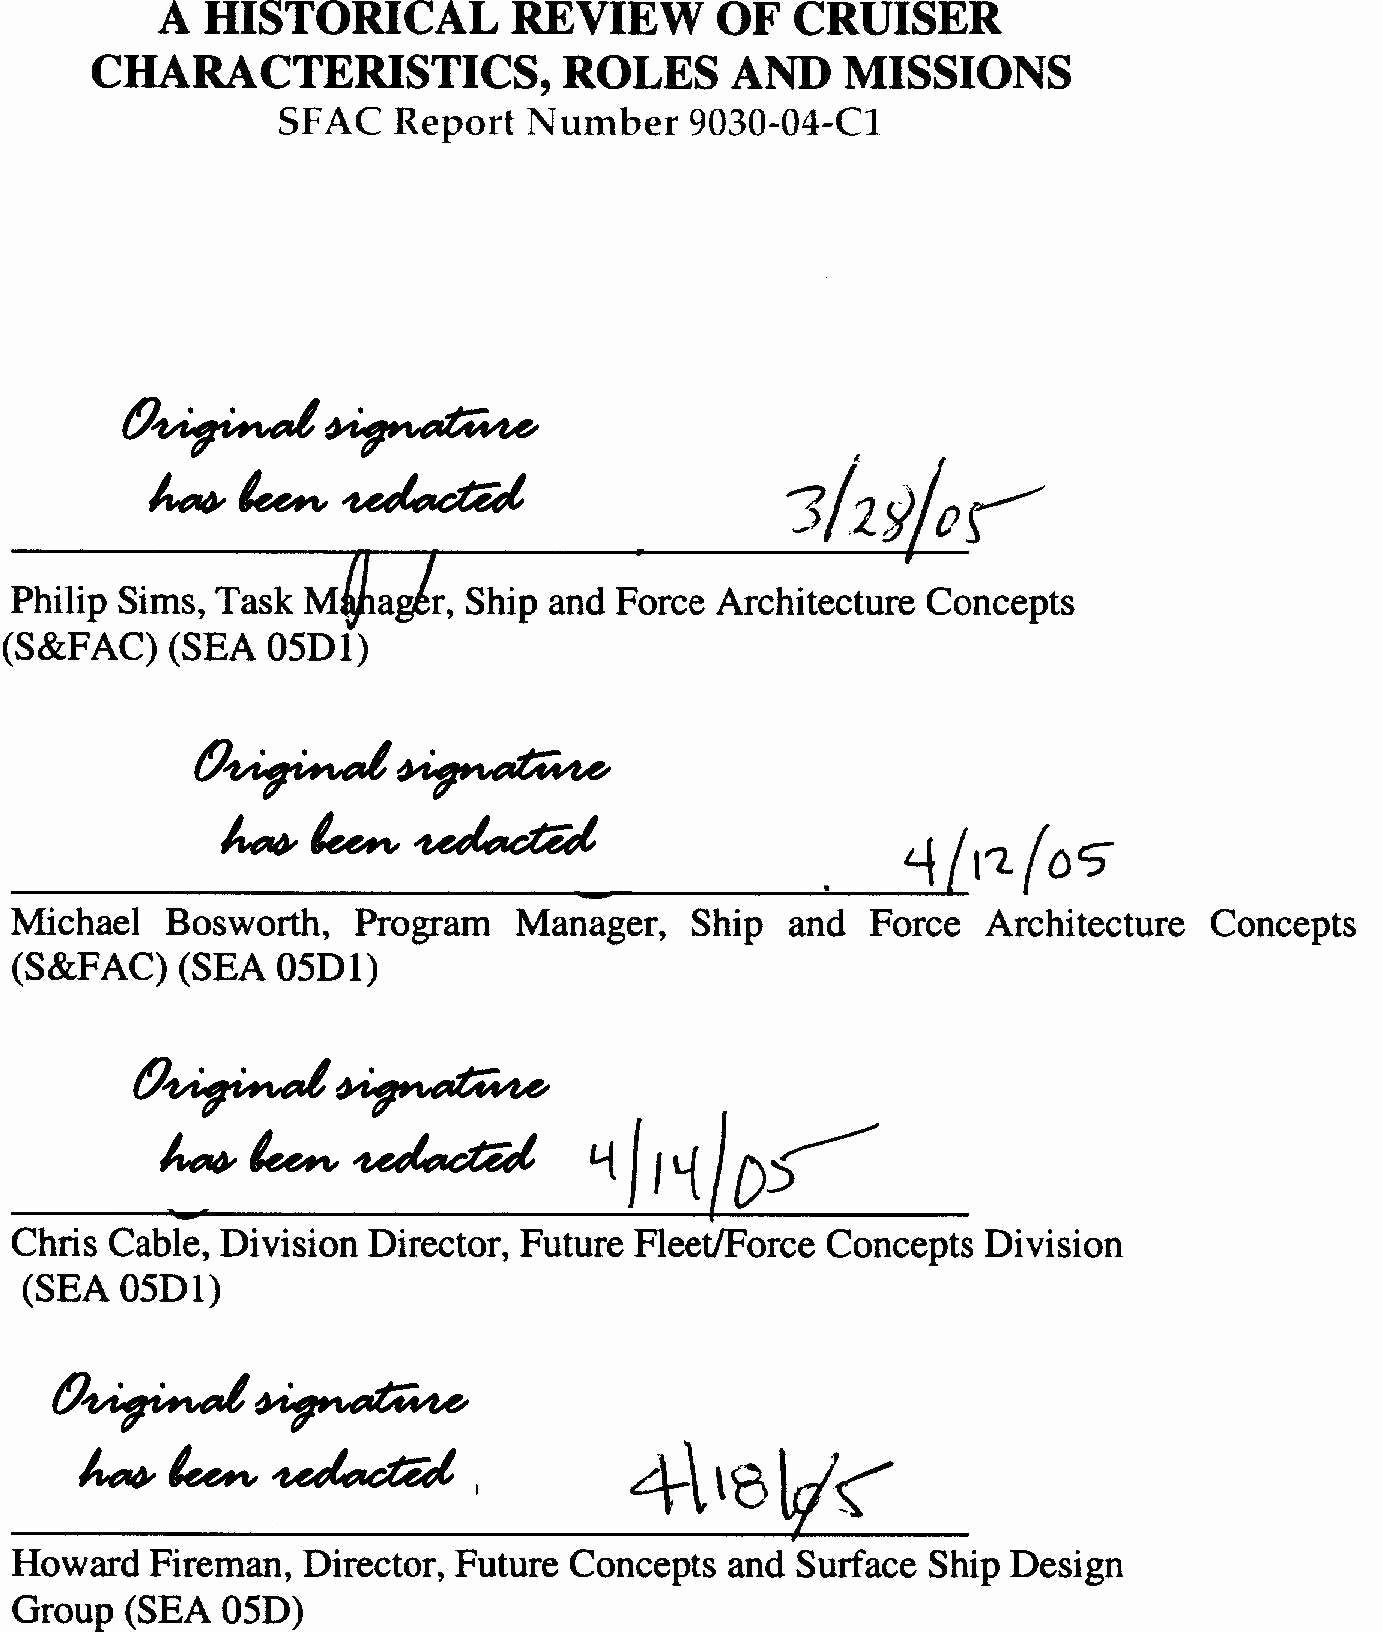 Contract Signature Page Example Unique Historical Review Of Cruiser Characteristics Roles and